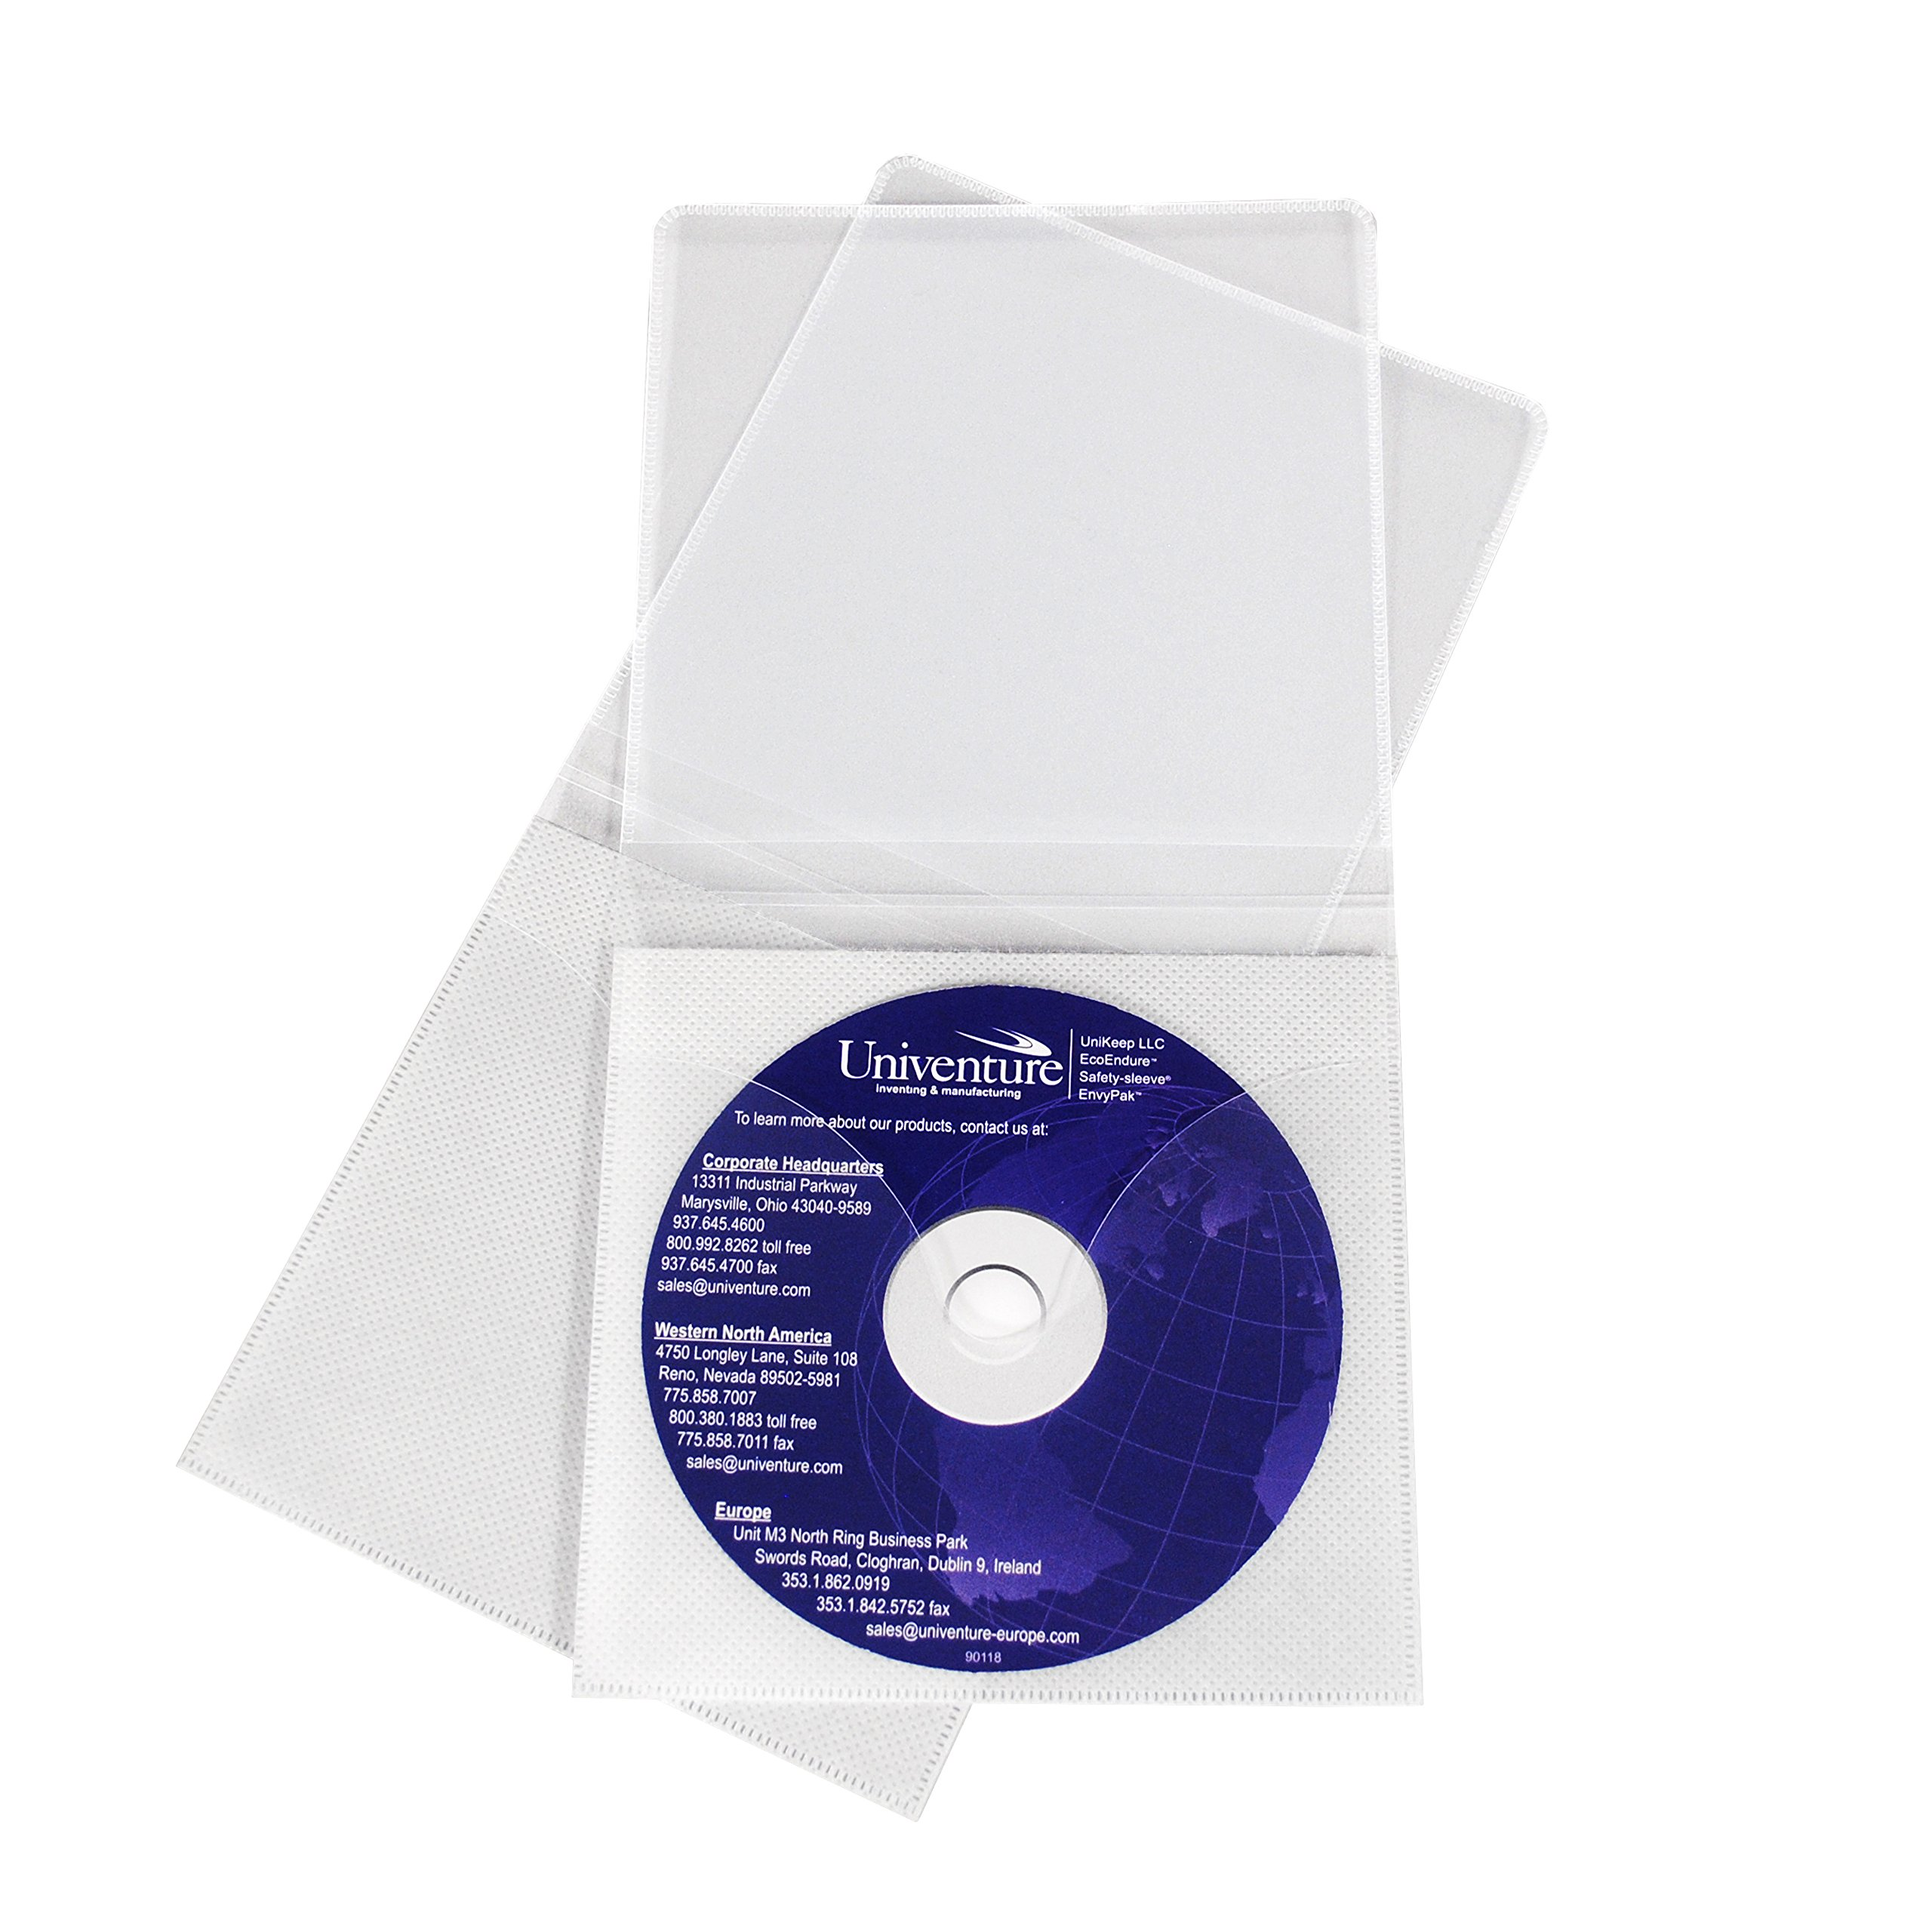 Viewpak XG CD/DVD sleeve with Safety-sleeve® - Box of 500